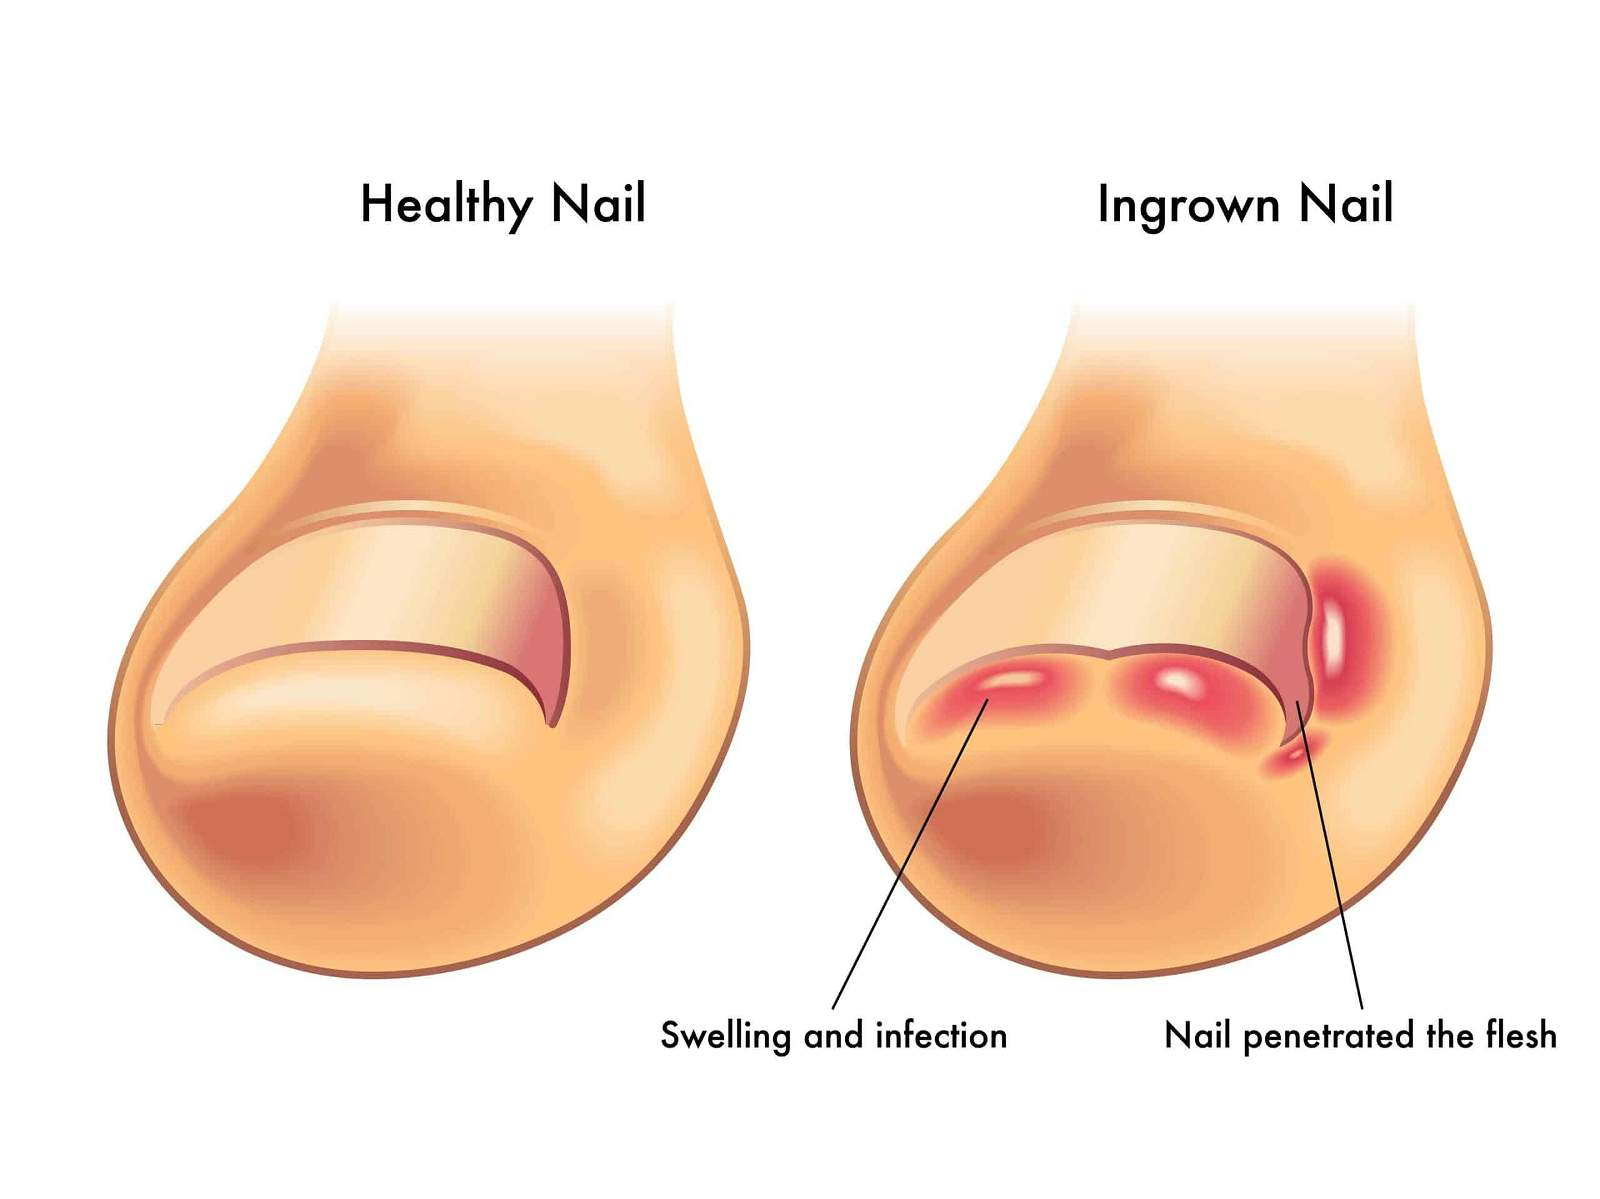 Ingrown Toenail-YOU HAVE AN INGROWN TOENAIL